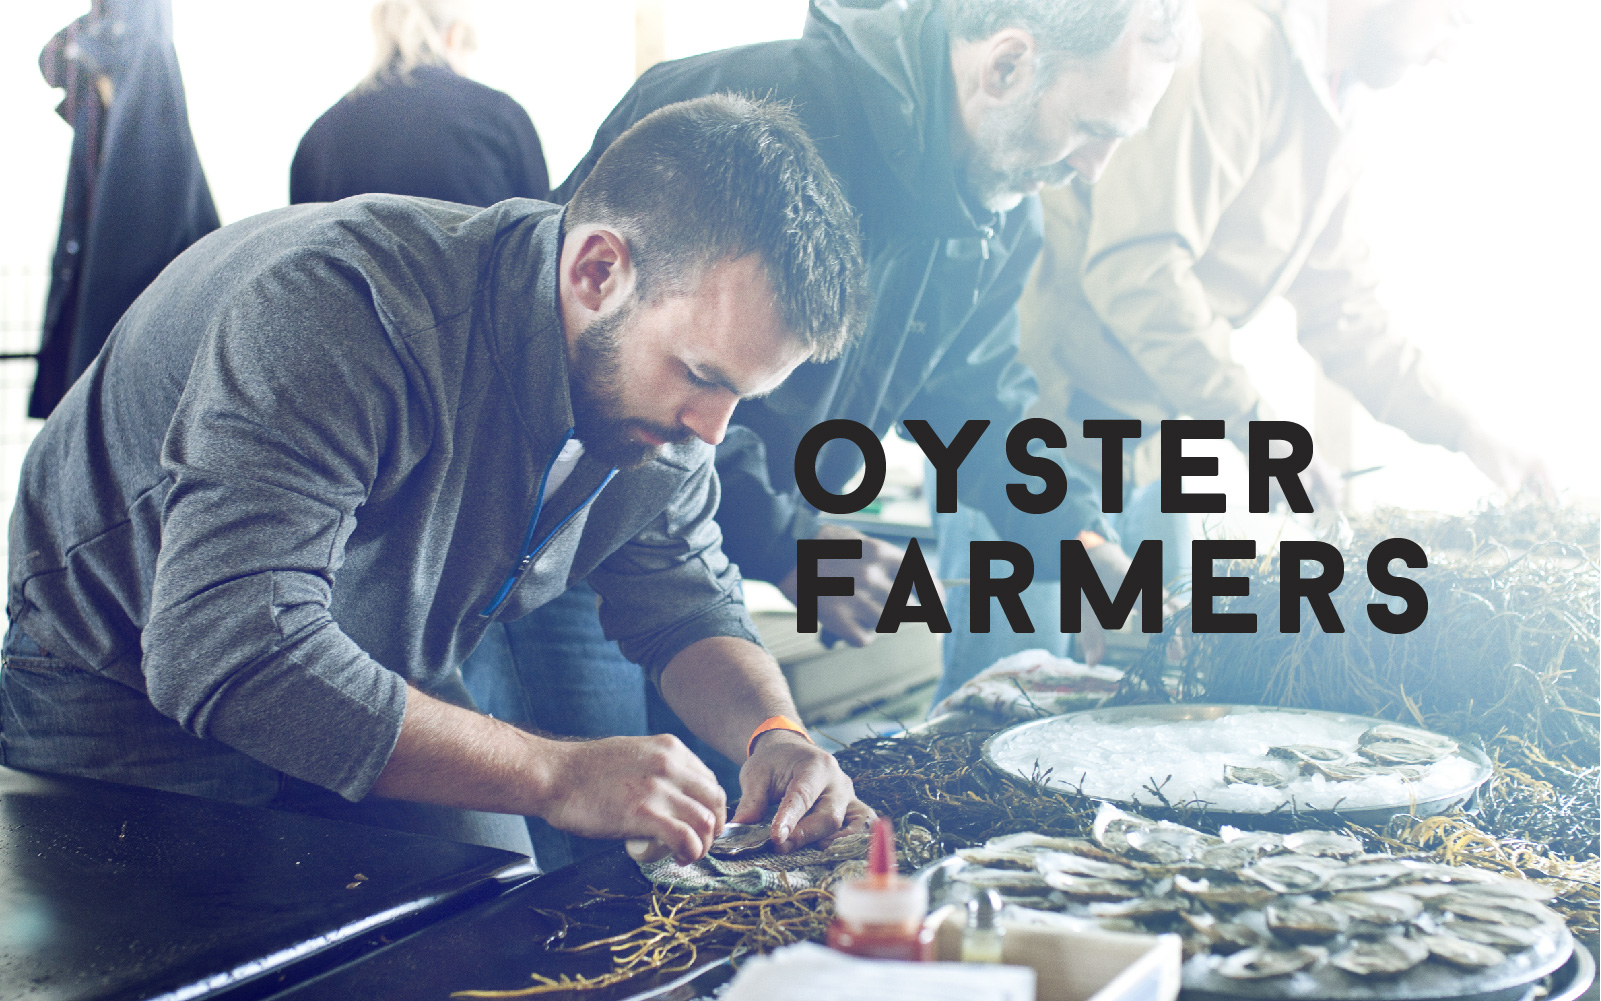 Photo Cred: oysterfest.ca